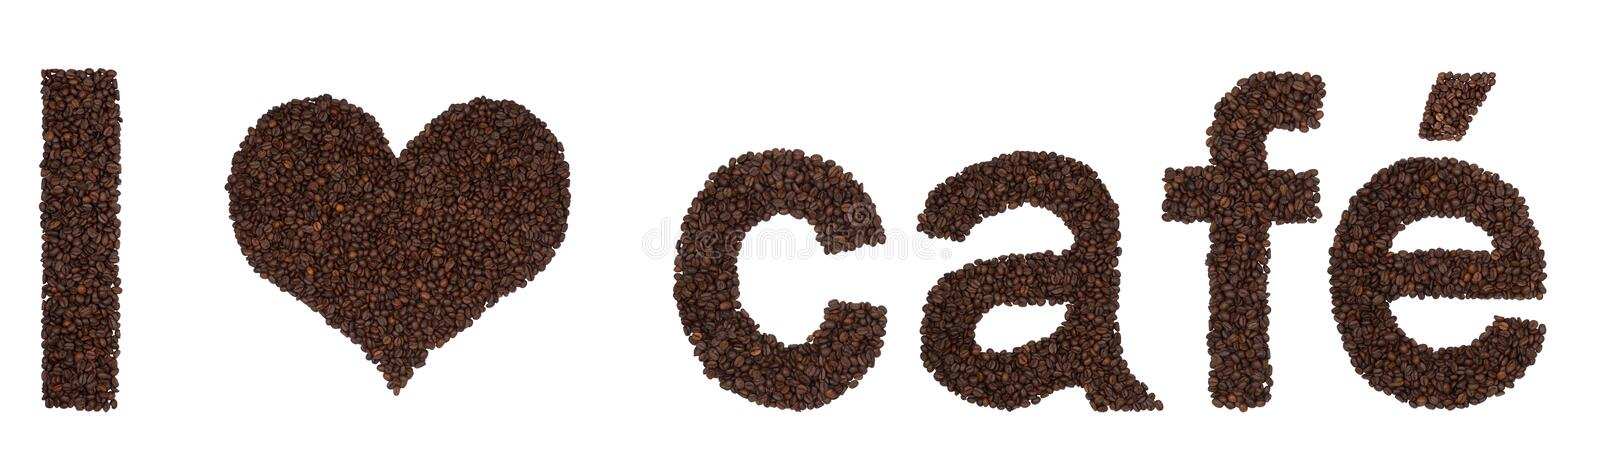 Download I Love Cafe From Coffee Beans Stock Photo - Image: 15990814